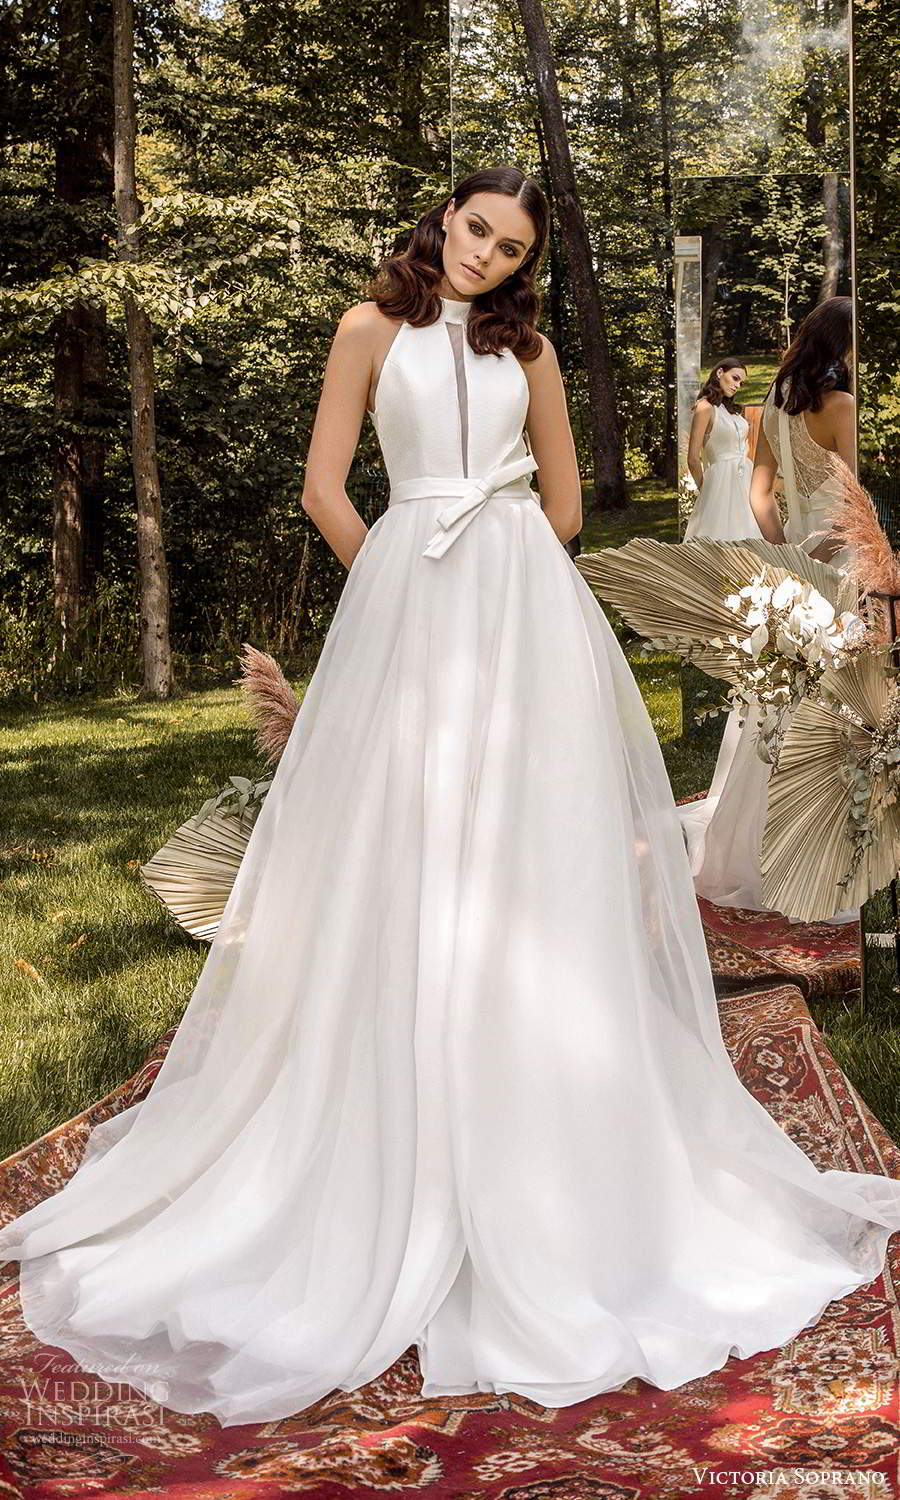 victoria soprano 2022 bridal sleeveless halter neckline clean minimalist a line ball gown wedding dress chapel train (15) mv